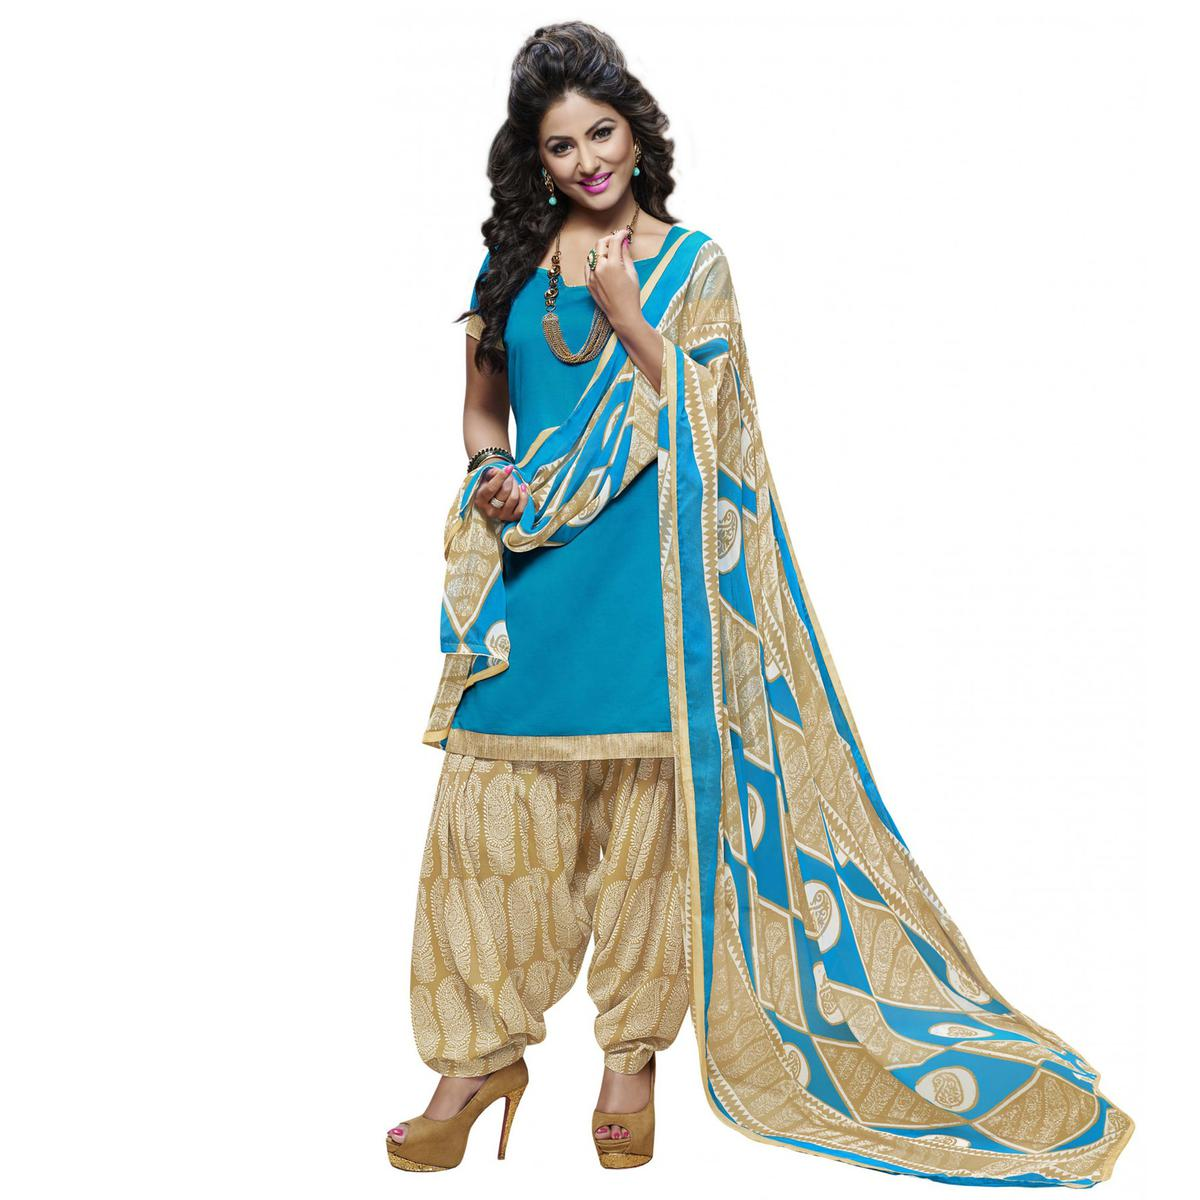 Stylish Blue And Beige Cotton Dress Material With Matching Dupatta